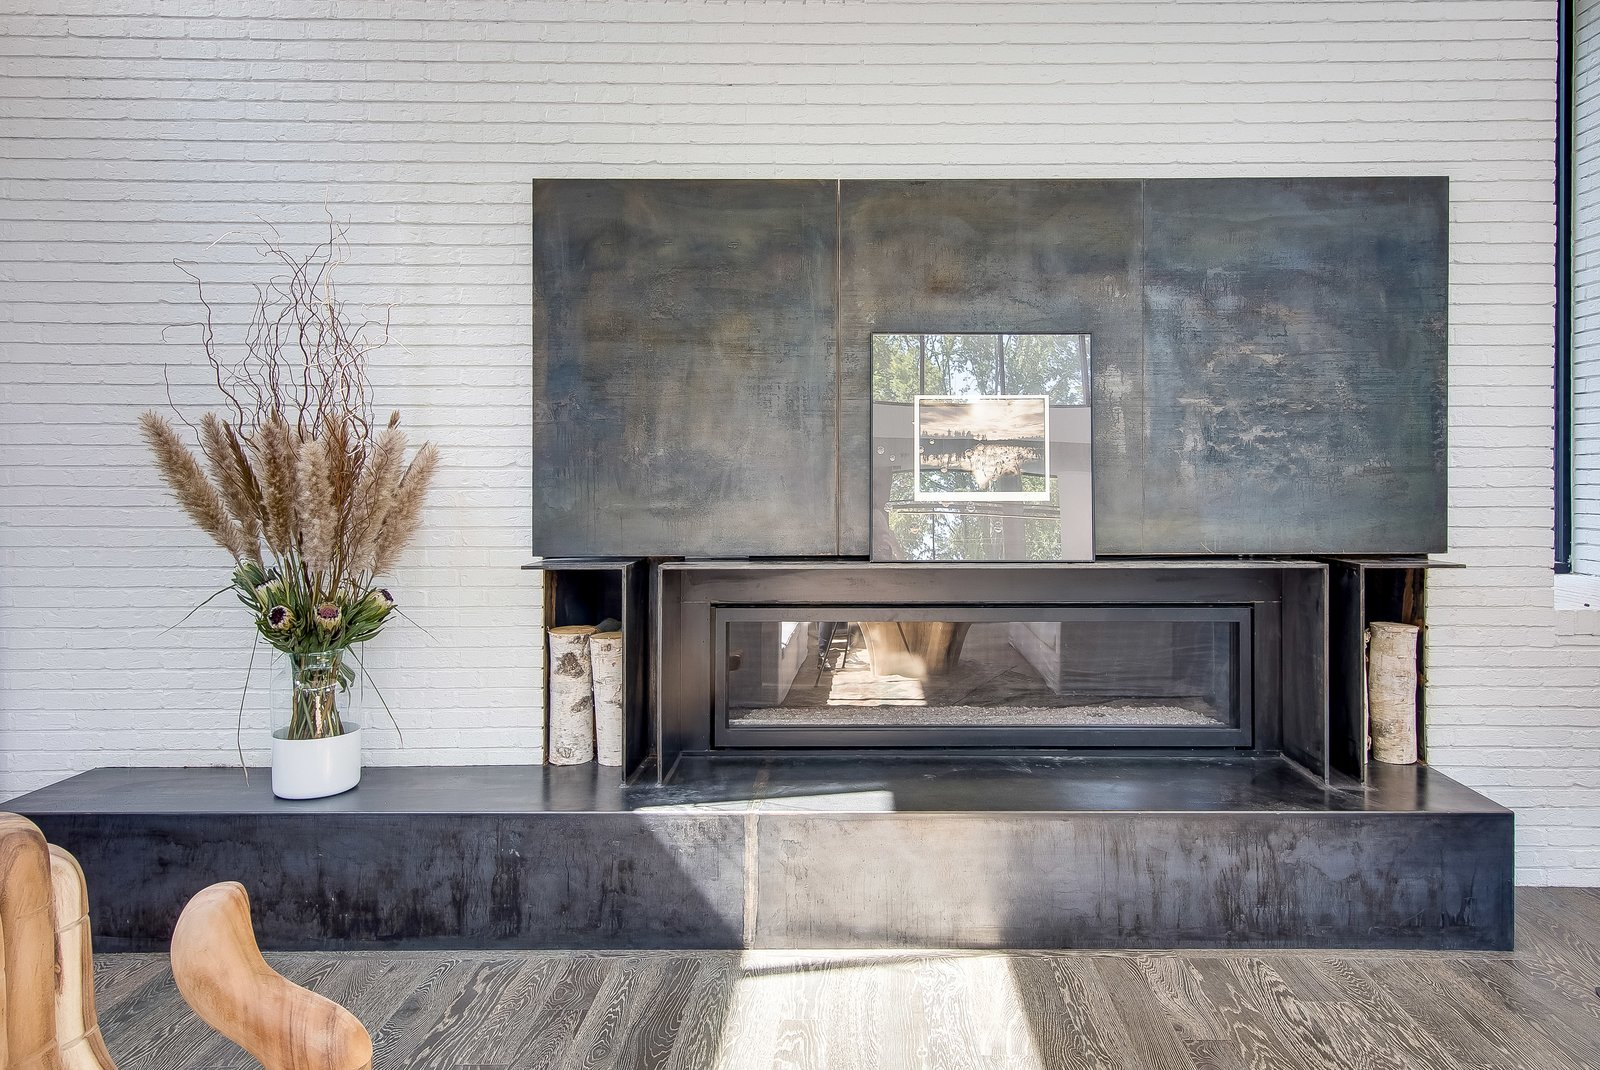 Living Room, Dark Hardwood Floor, Ribbon Fireplace, and Recessed Lighting Dramatic steel panels slide open to reveal the TV over the long fireplace and steel mantel  Modern View